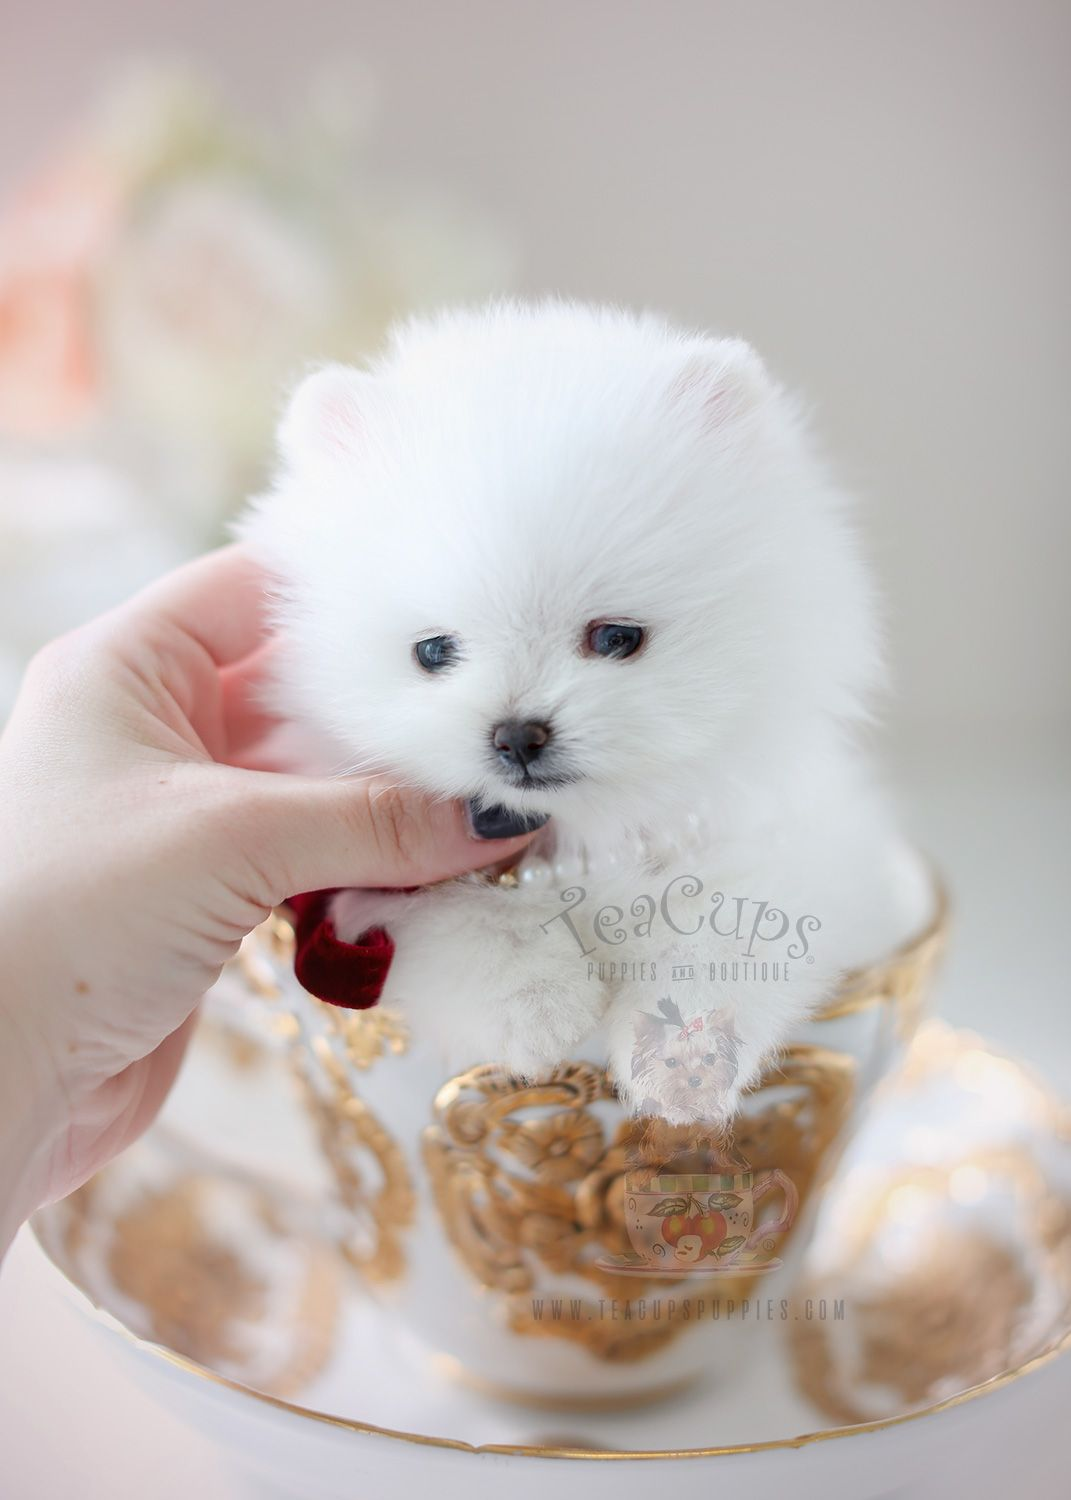 Snow White Teacup Sized Pomeranian Puppy By Teacup Puppies And Boutique Home Raised And Locally Bred Teacup Puppies Pomeranian Puppy Pomeranian Puppy For Sale